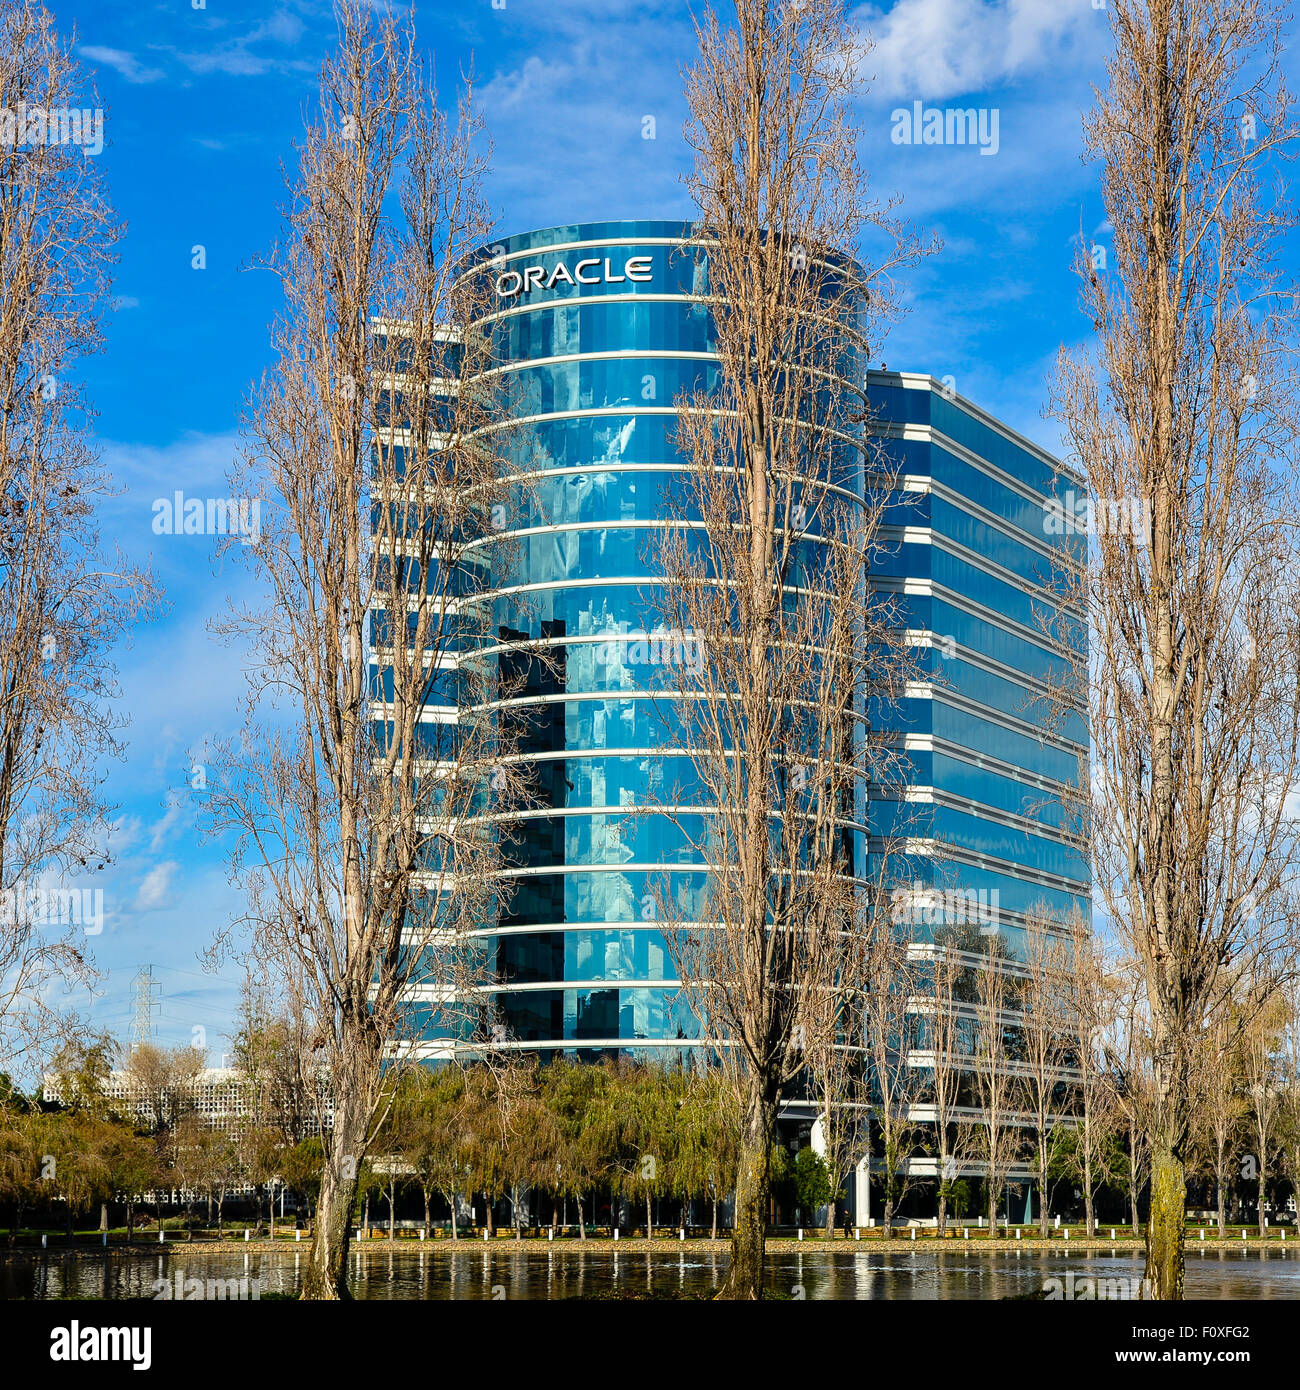 Oracle Corporation,Redwood Shores, California - Stock Image